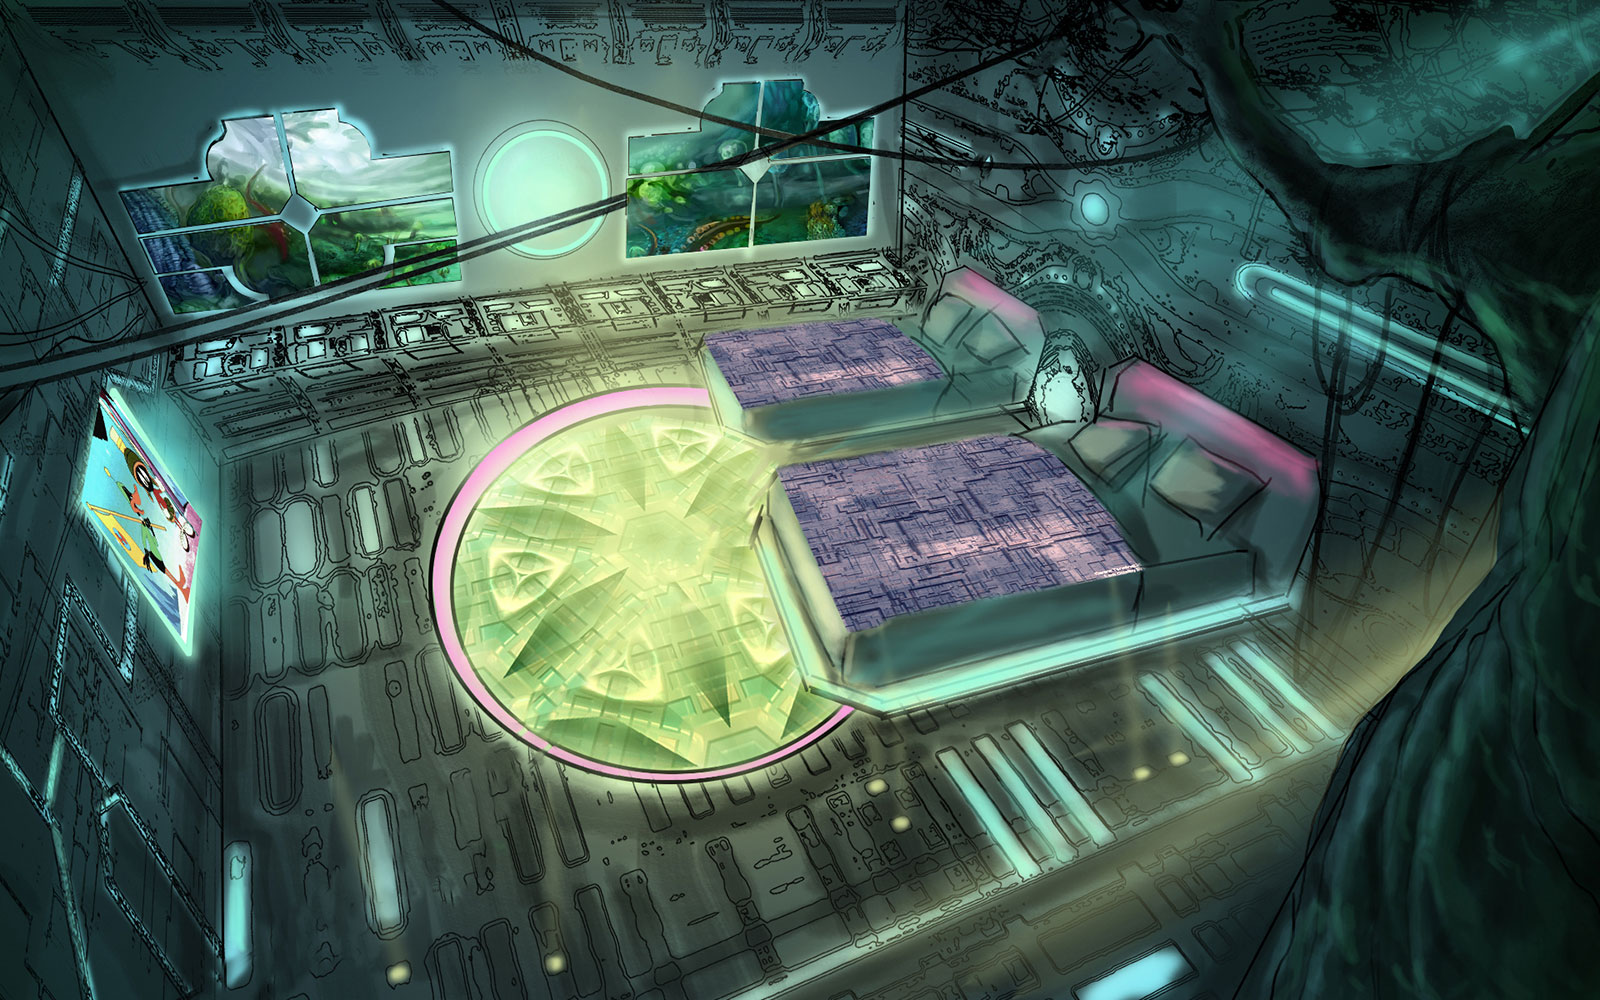 UFO0615-Forest-Planet-Room.jpg